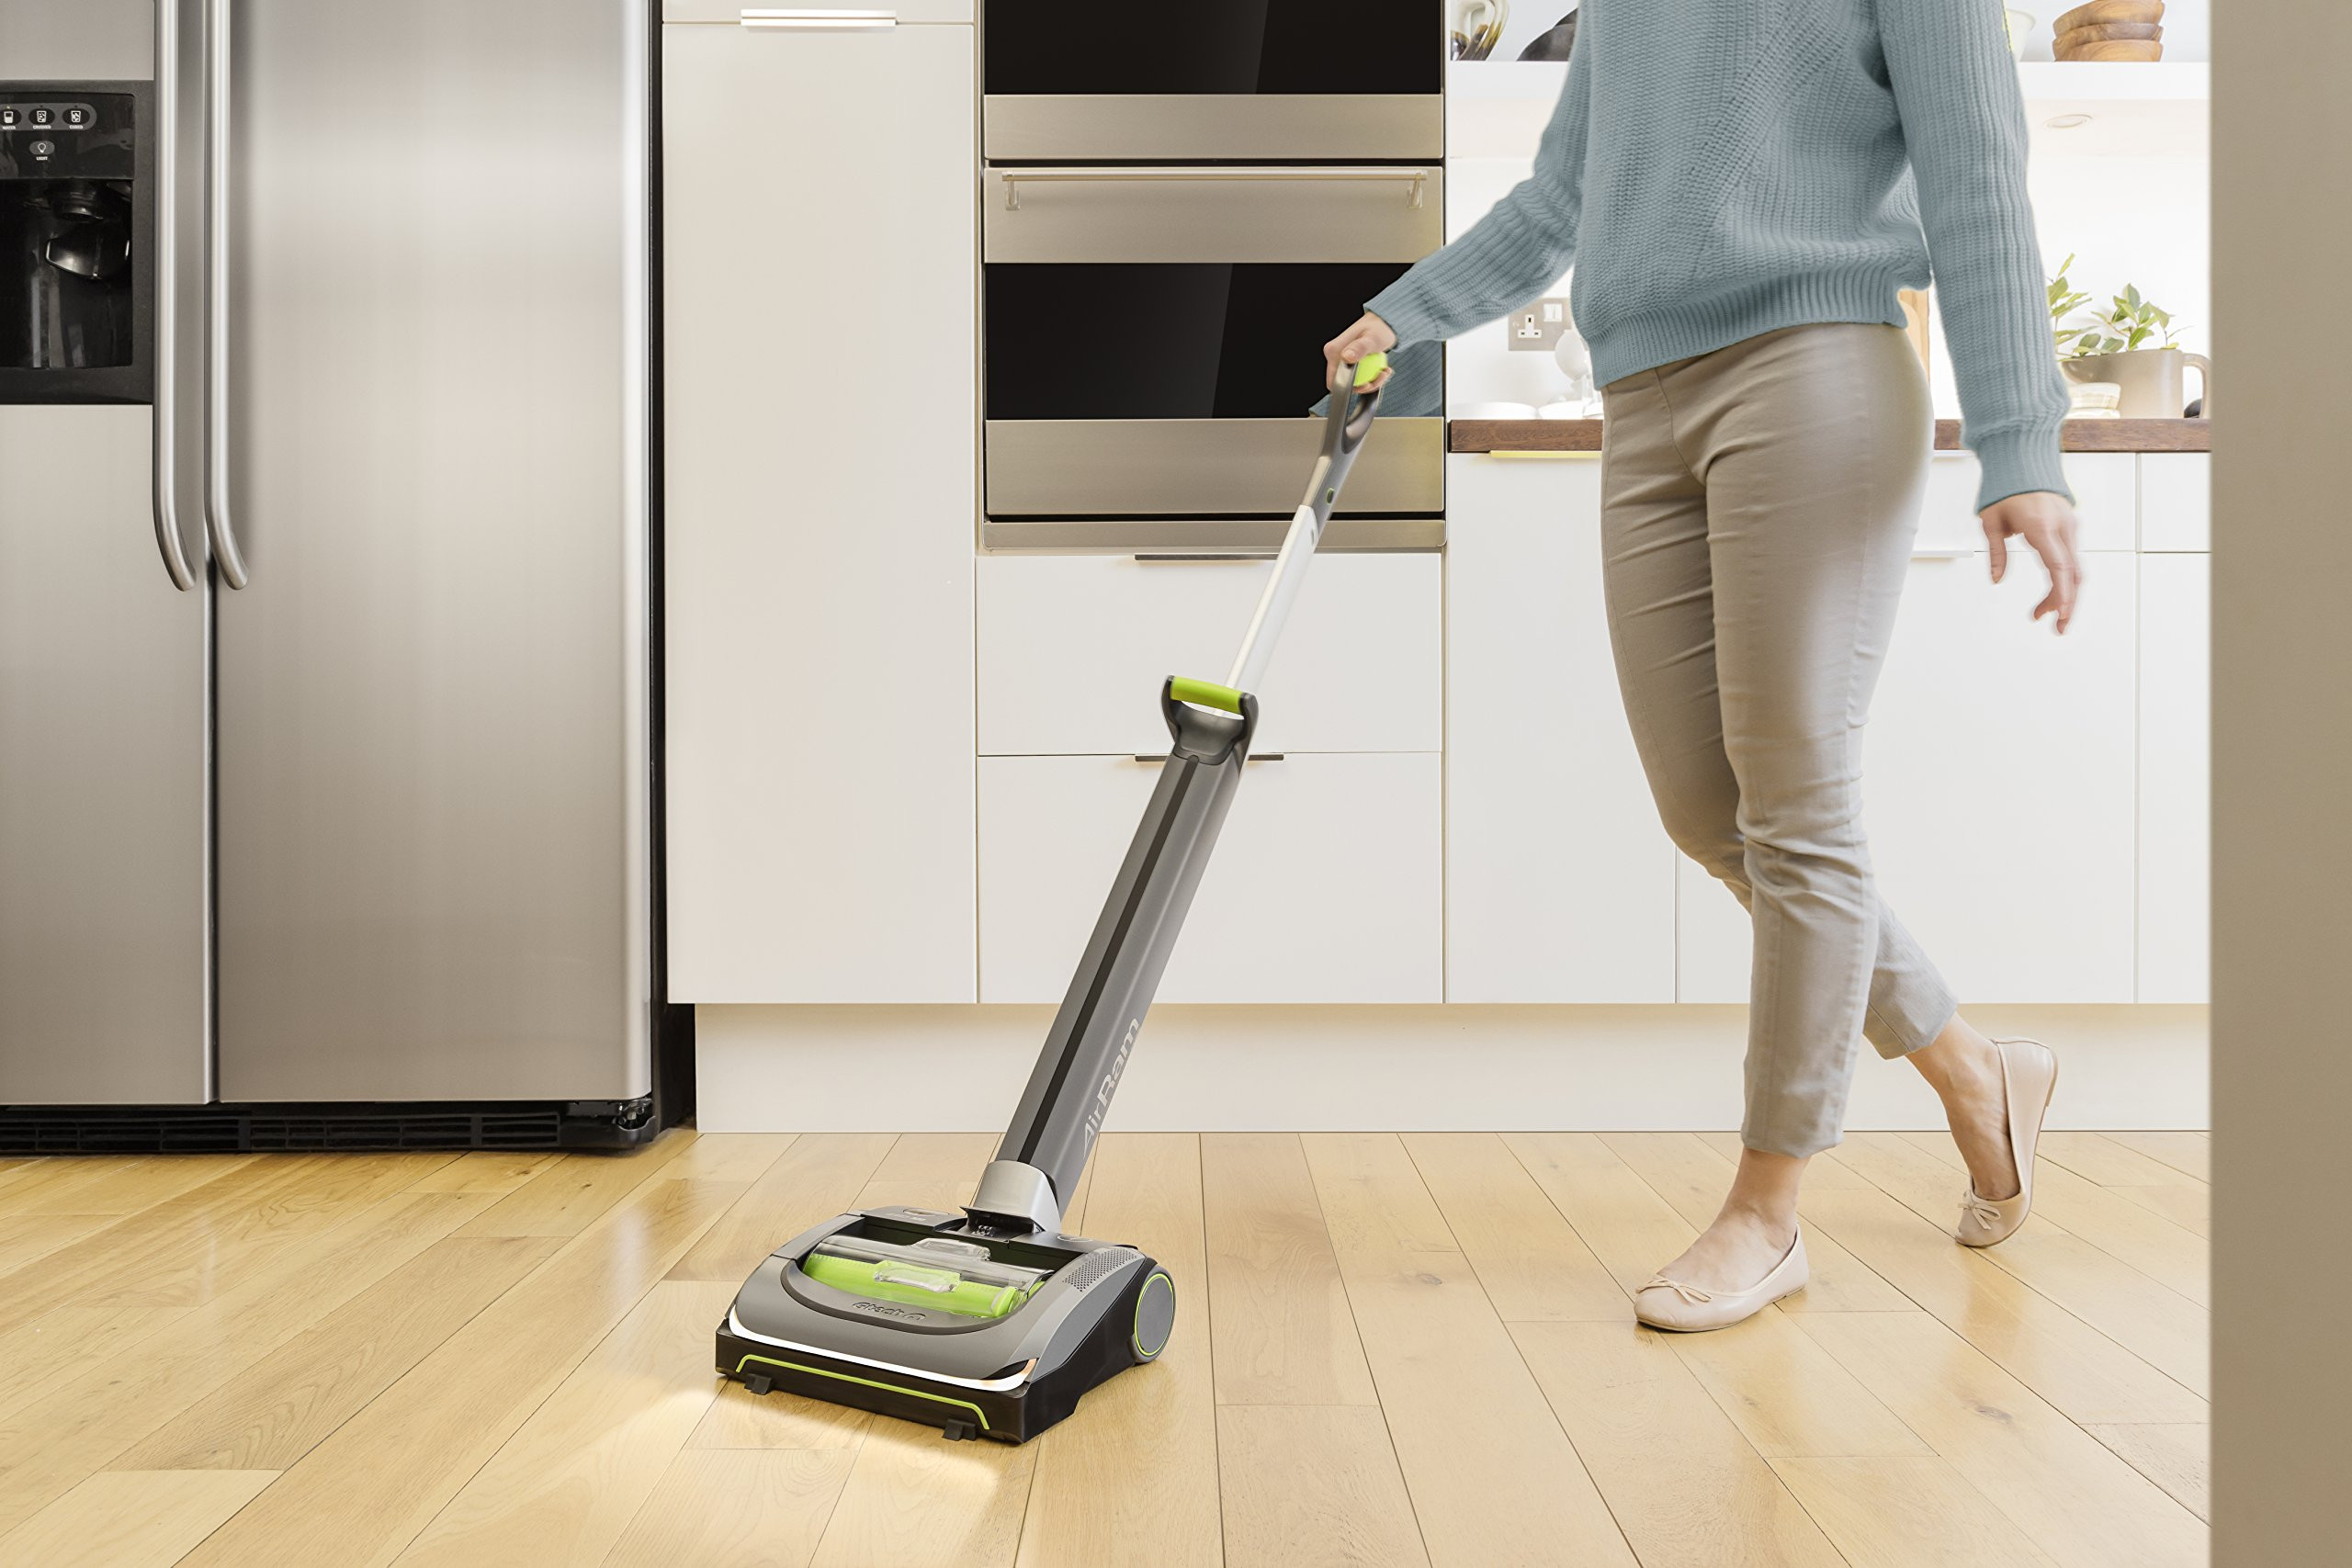 hardwood floor cleaning machine reviews of vacuum and floor care shop amazon uk pertaining to vacuum cleaners